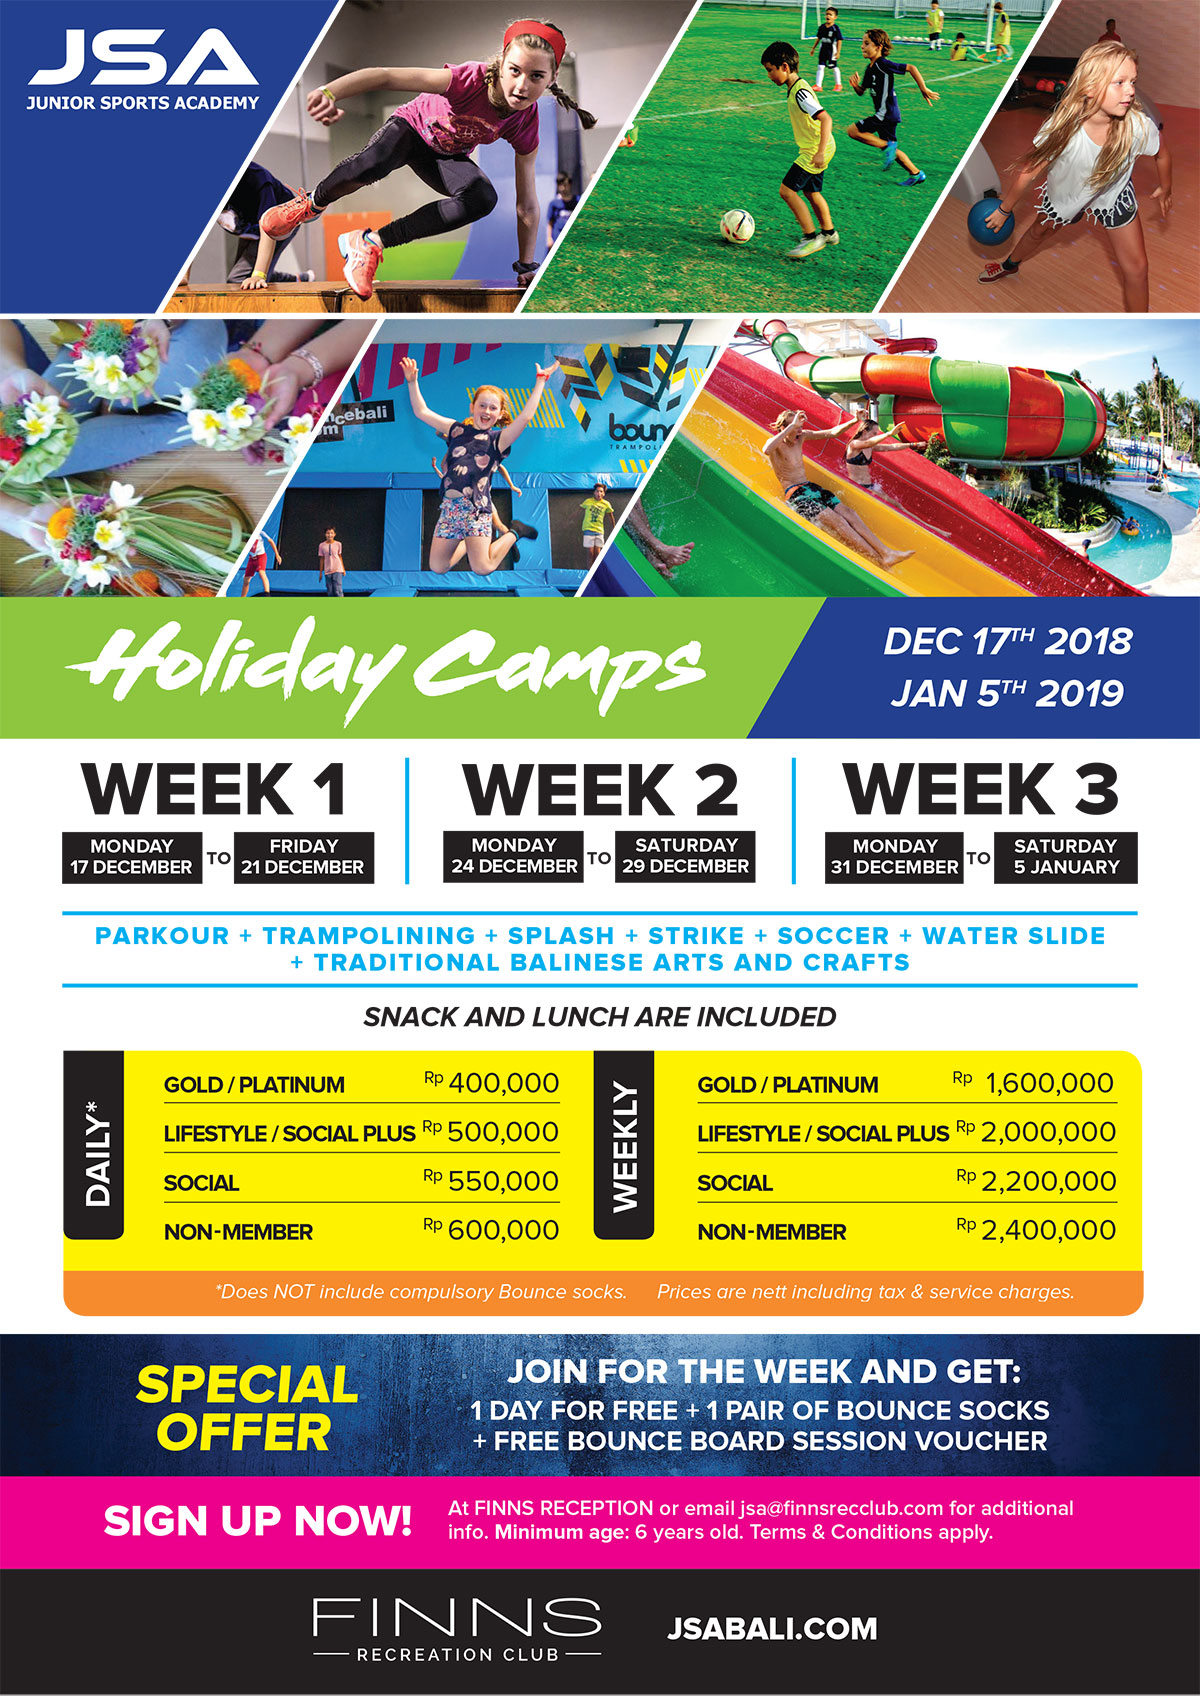 Holiday Camps 17th Dec 2018 – 5th Jan 2019